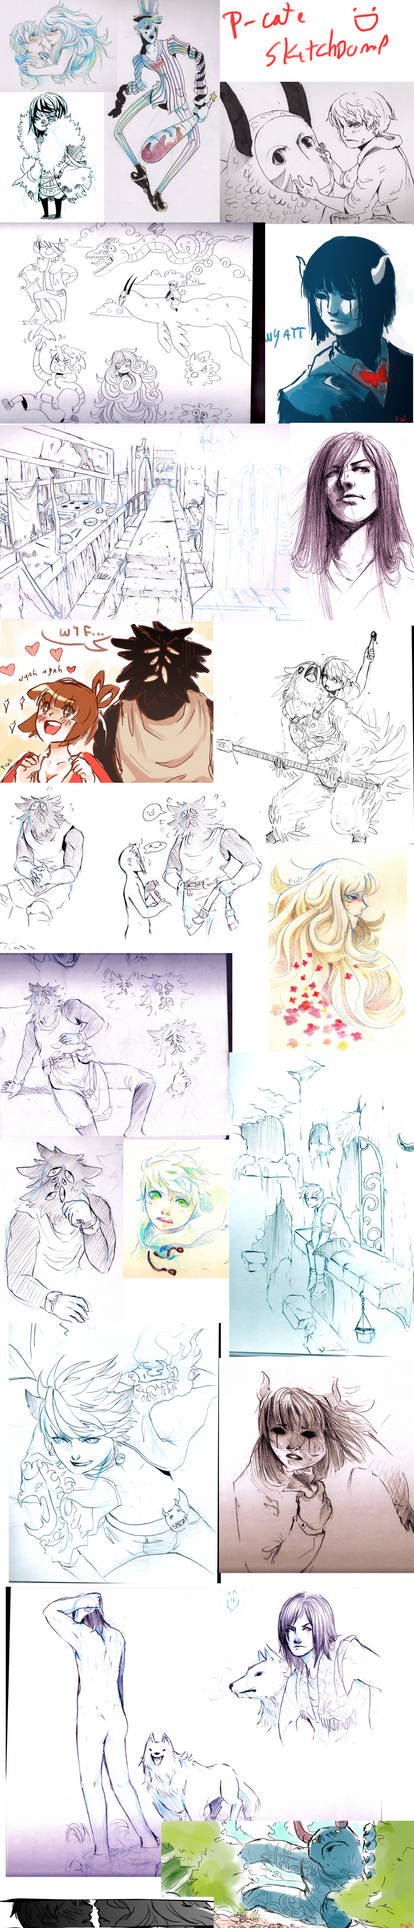 sketchdump 4 by P-cate